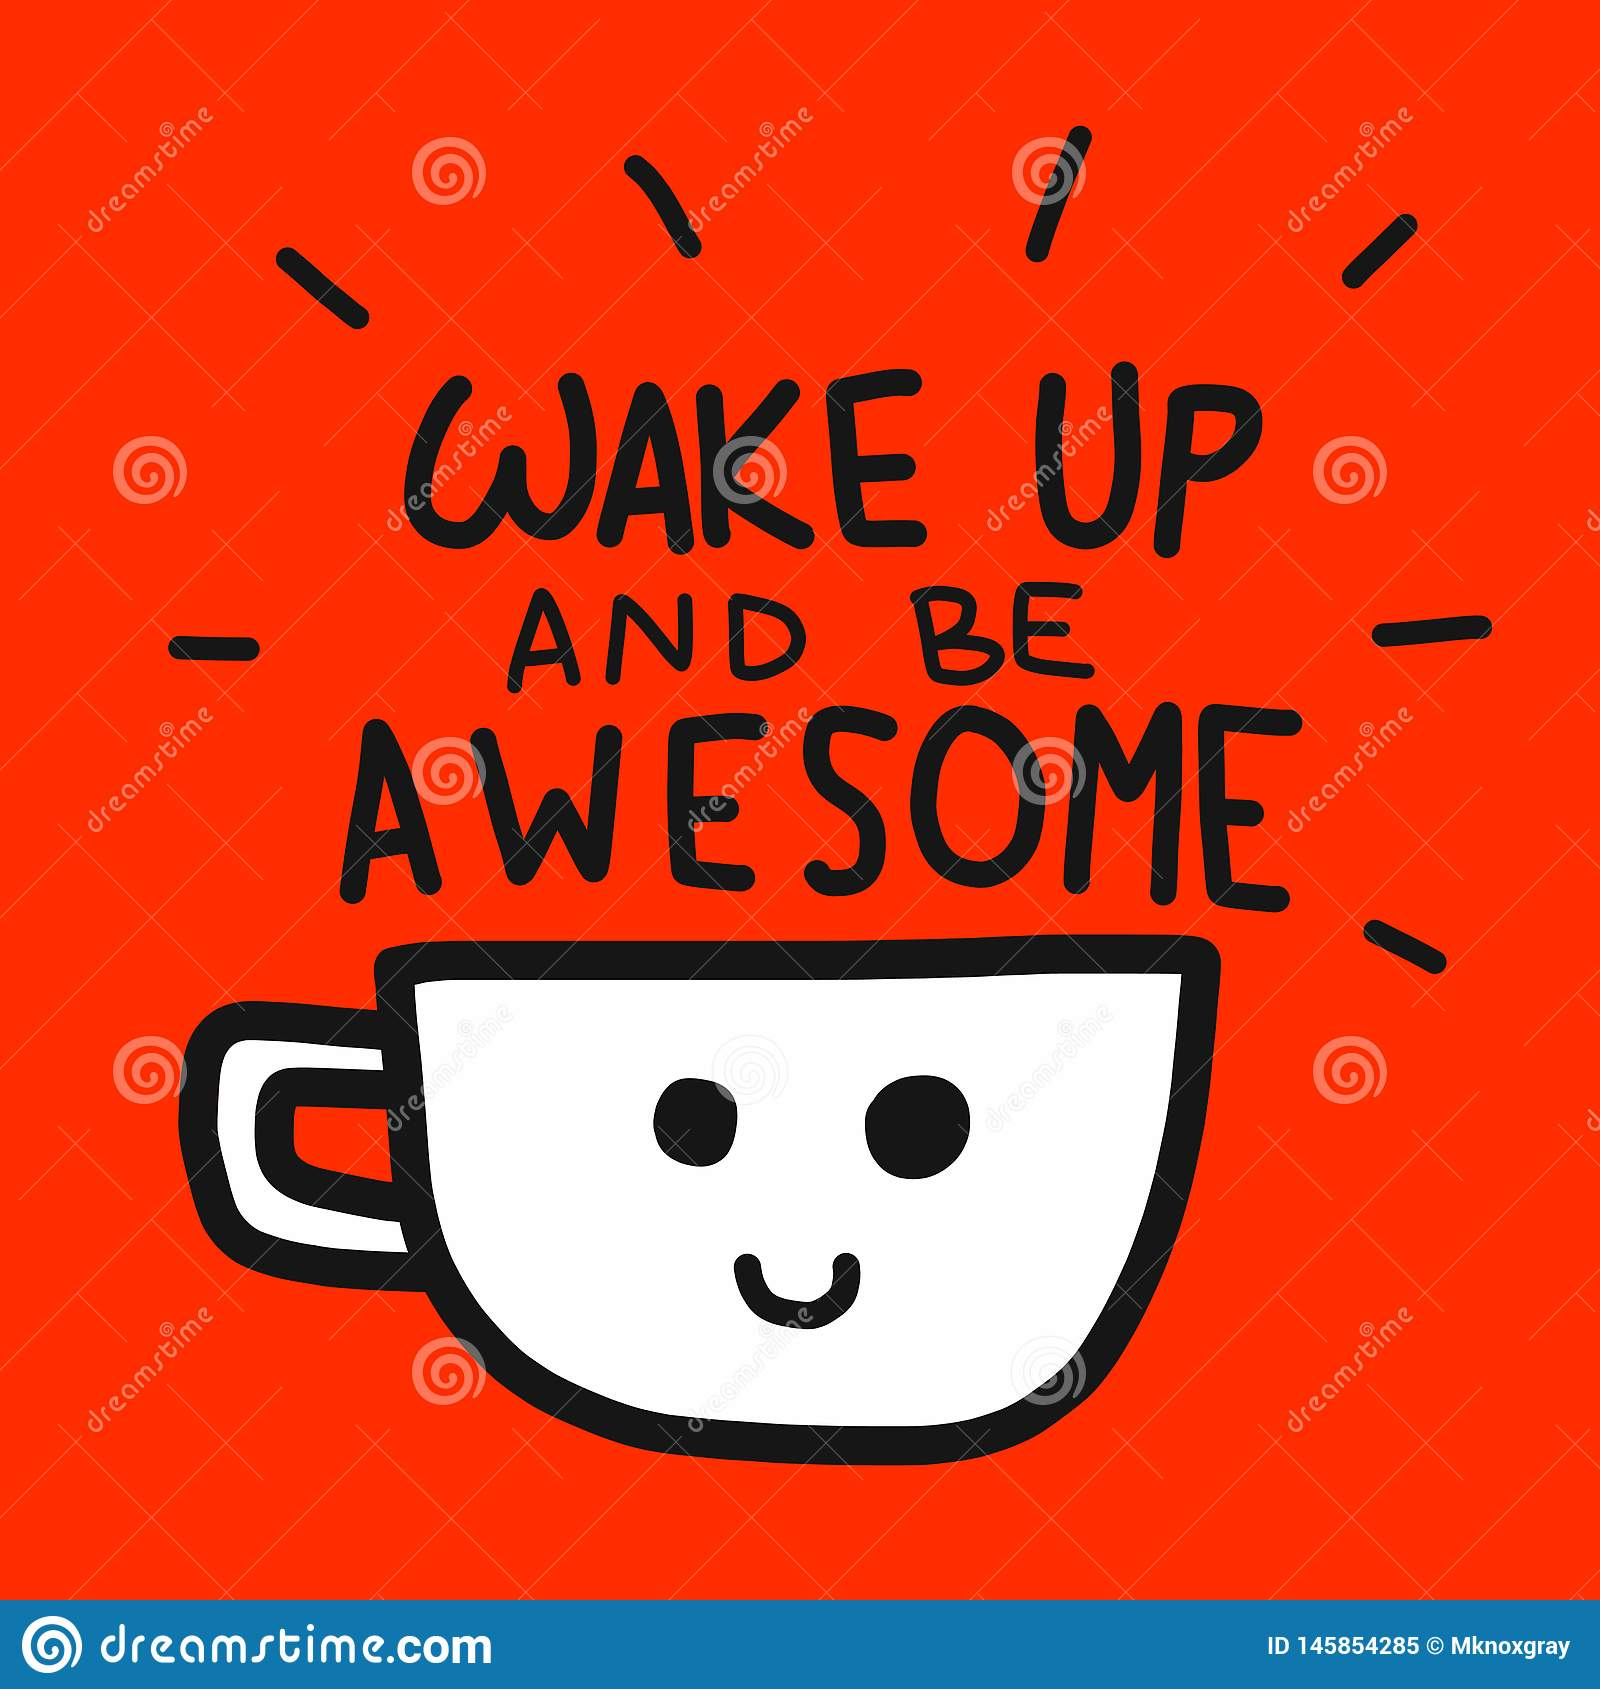 Wake up and be awesome word and coffee cup cartoon illustration